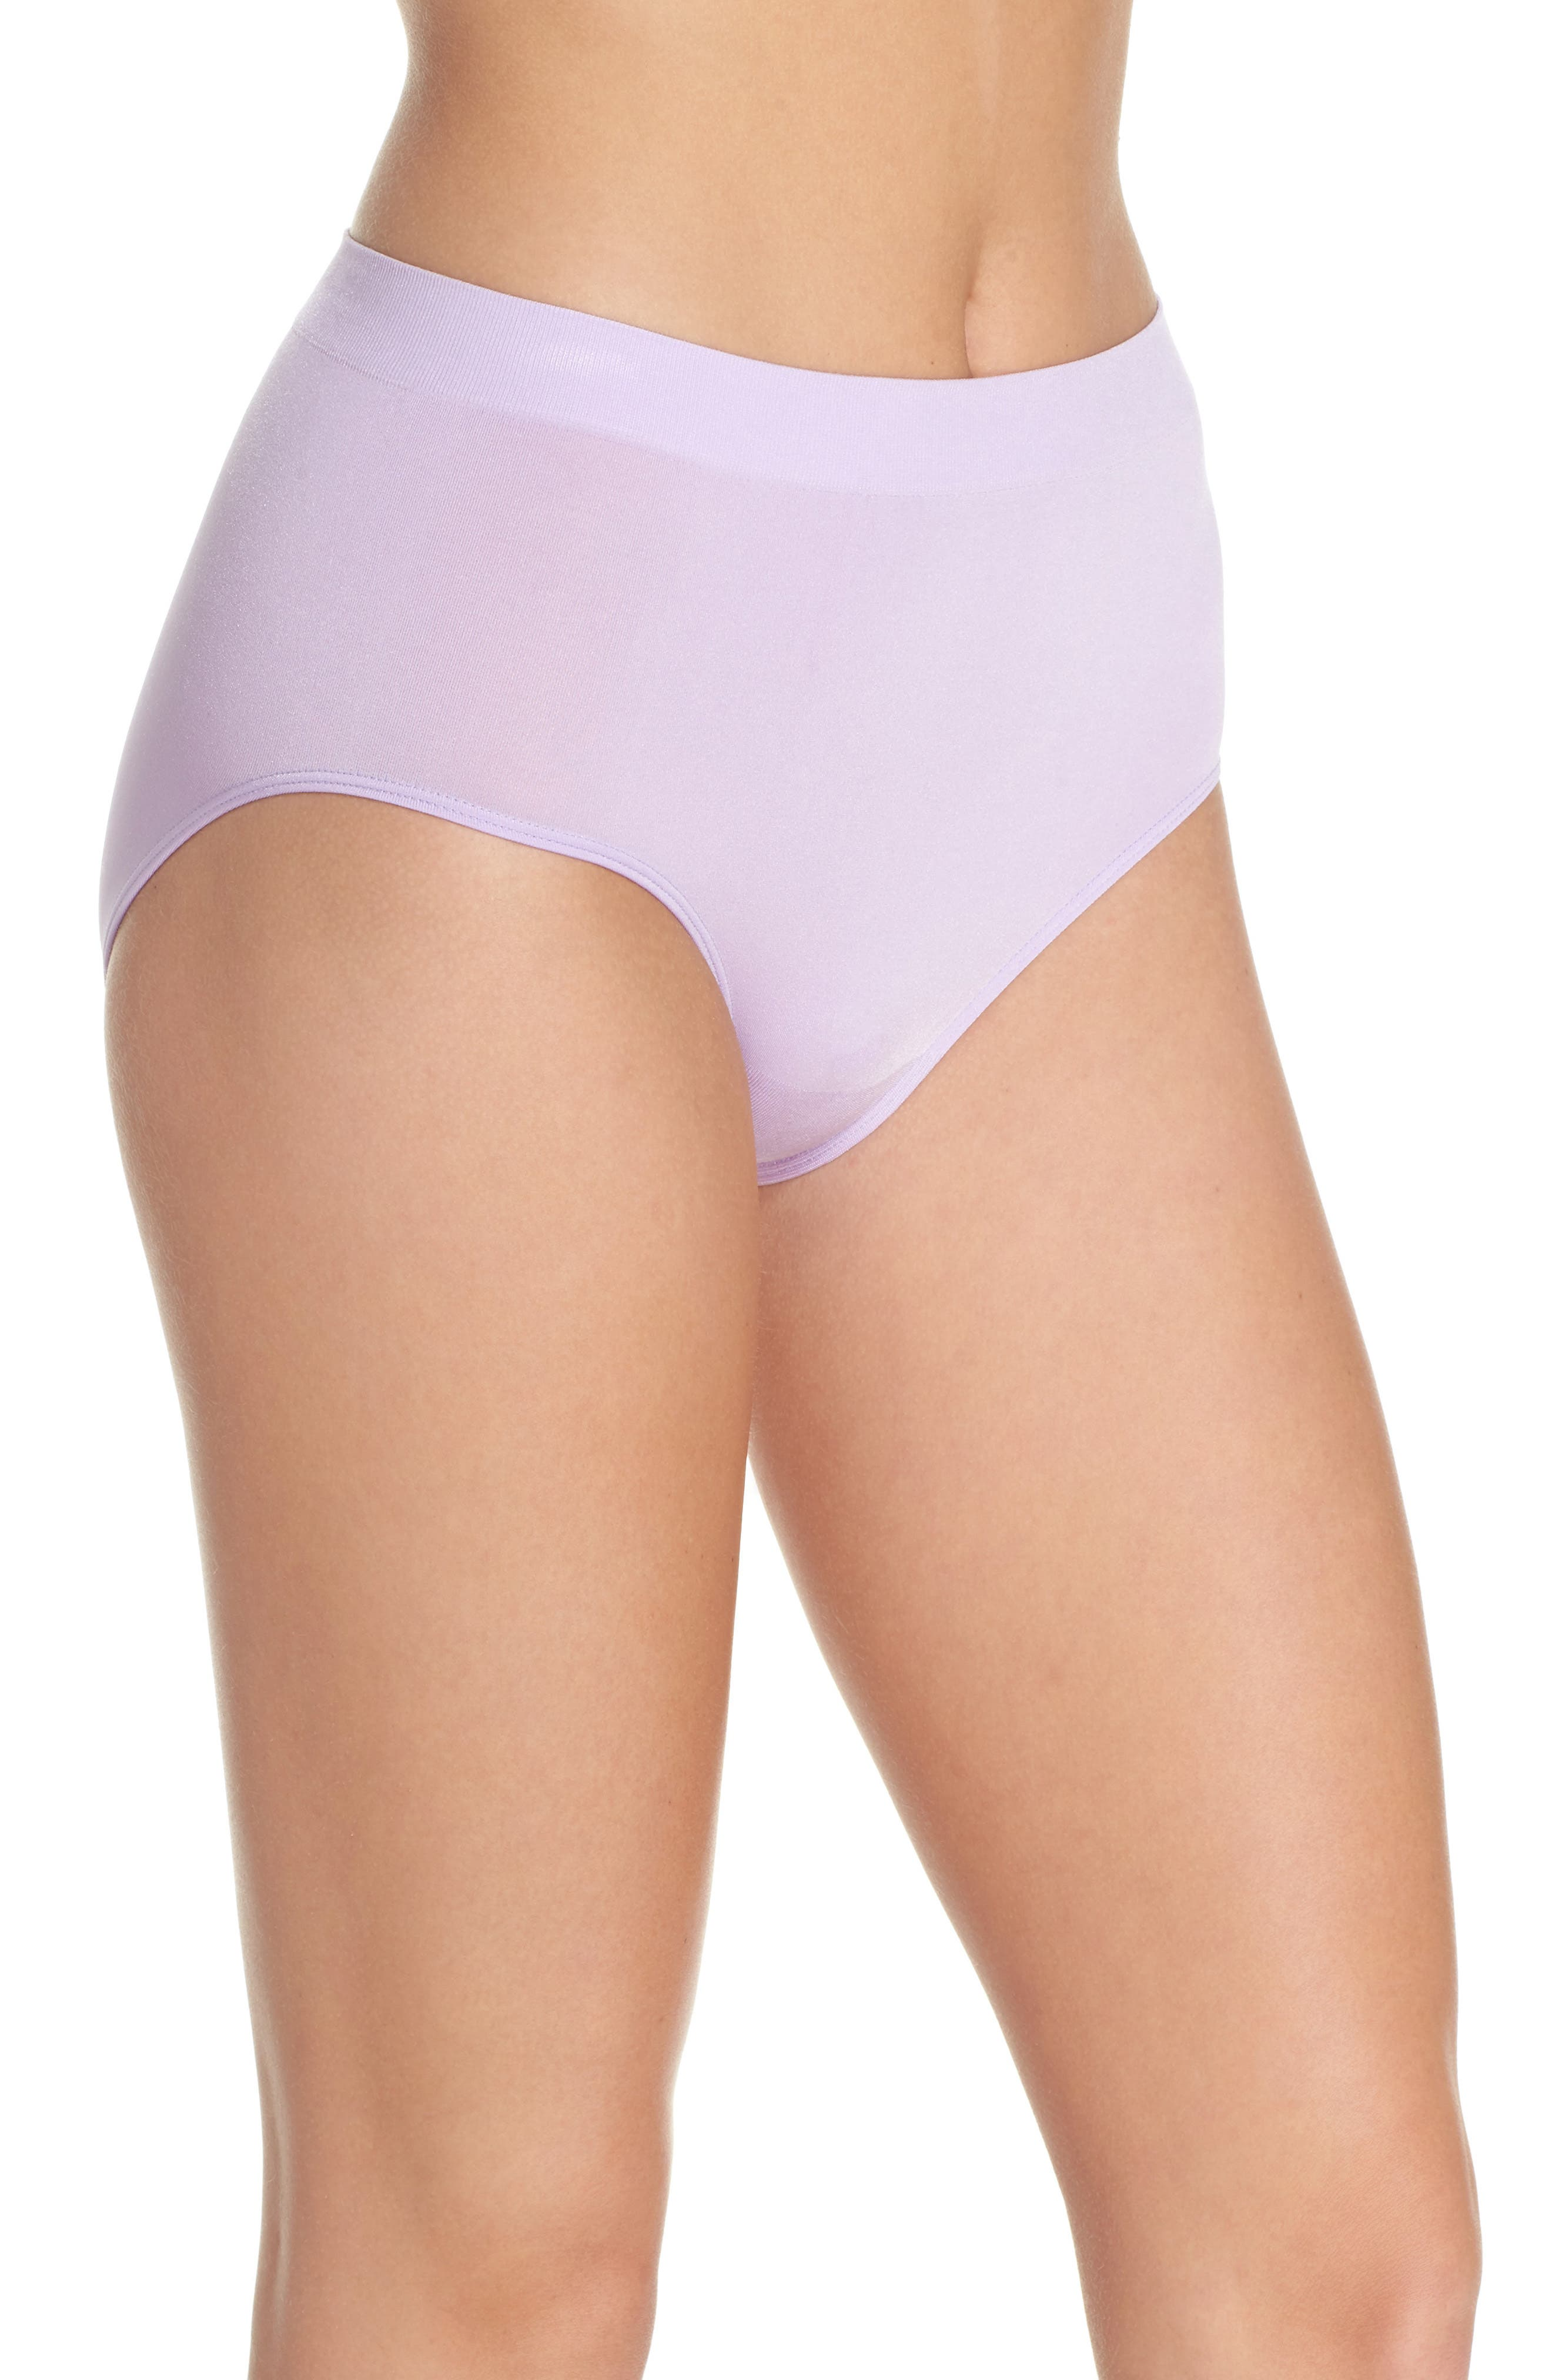 B Smooth Briefs,                             Alternate thumbnail 138, color,